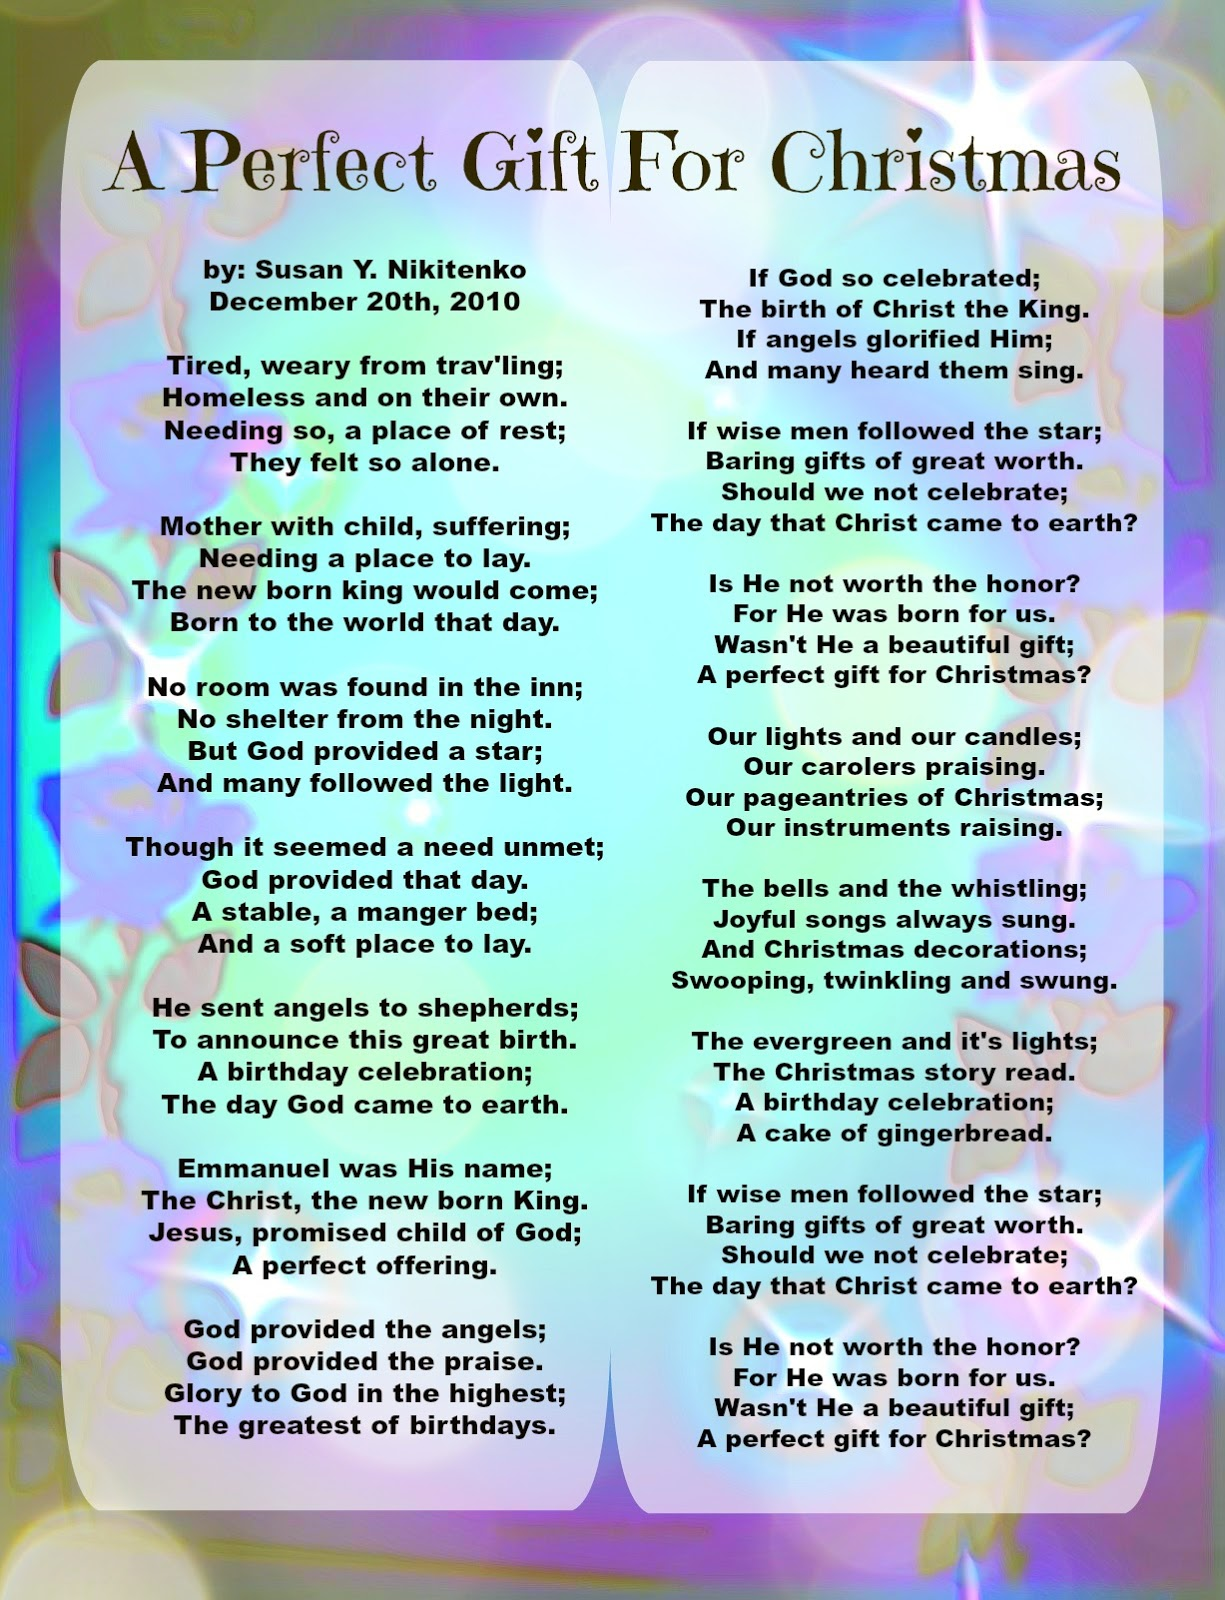 Christian Images In My Treasure Box: Christmas Poem Poster